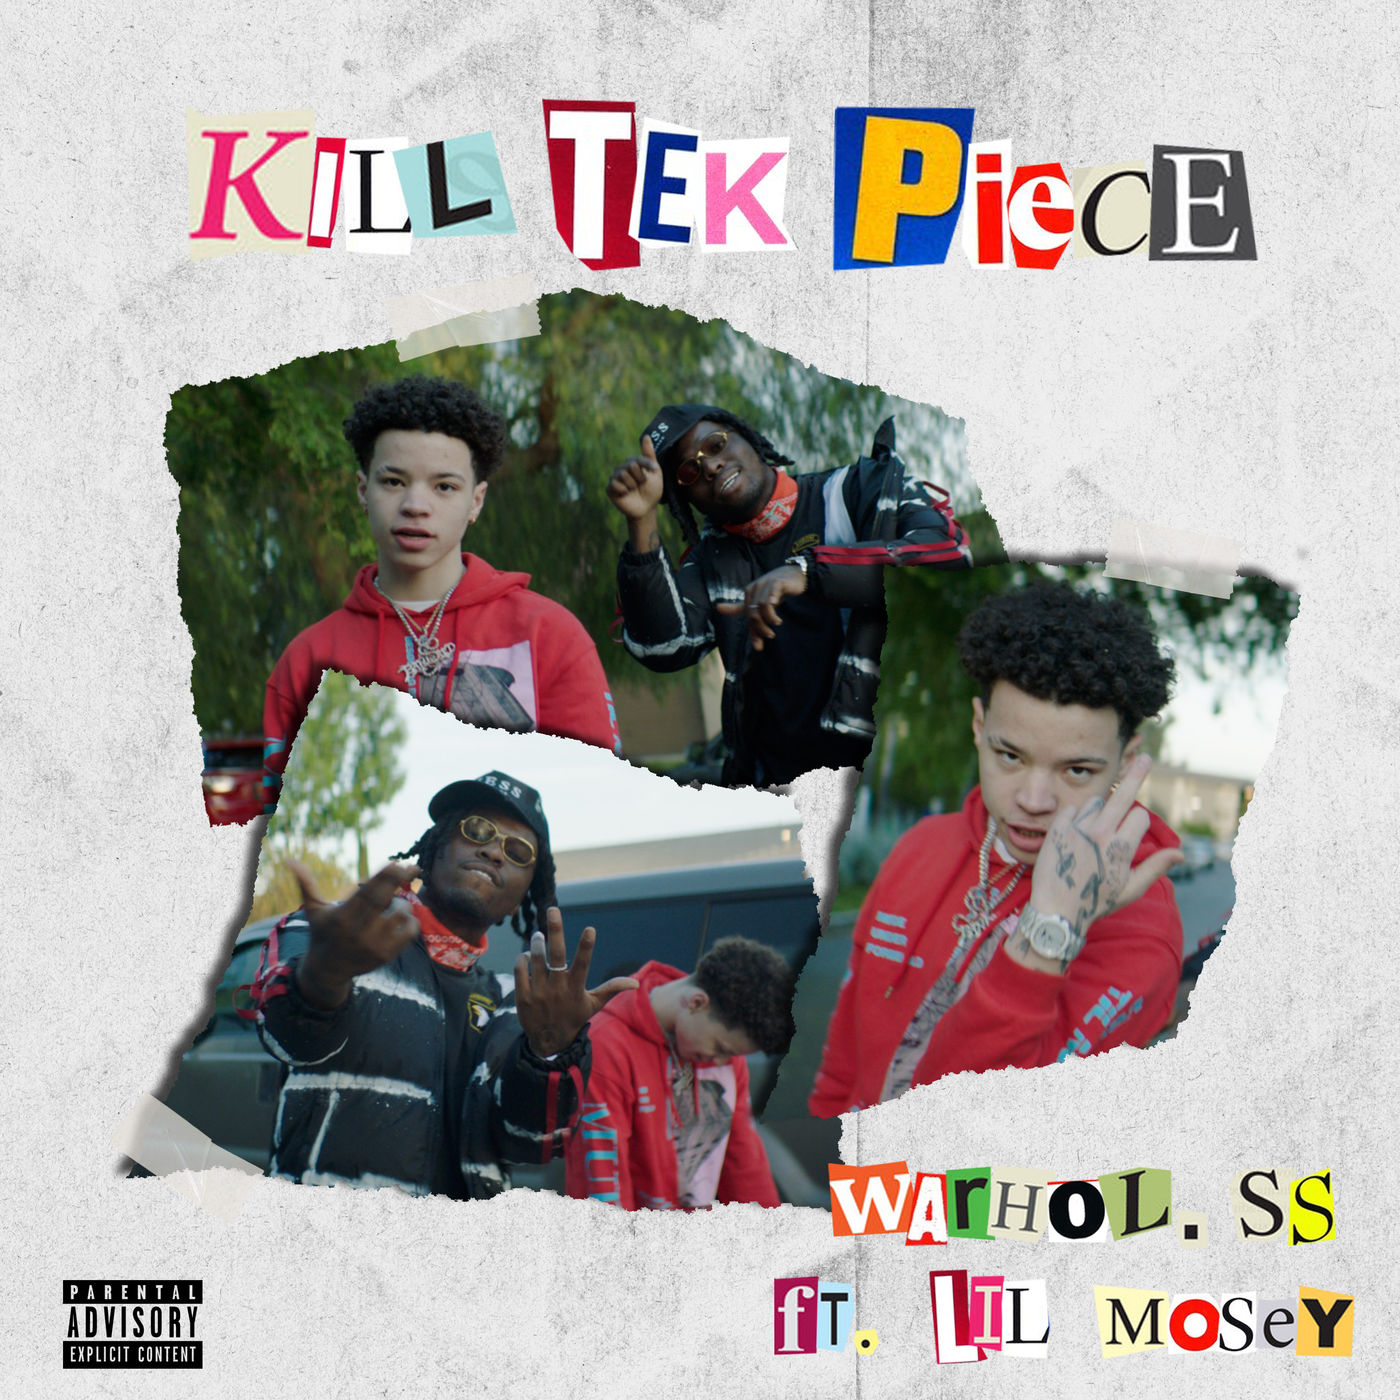 2df82e5f12d8 SEARCH FOR: Lil Mosey - Lyrical Lemonade